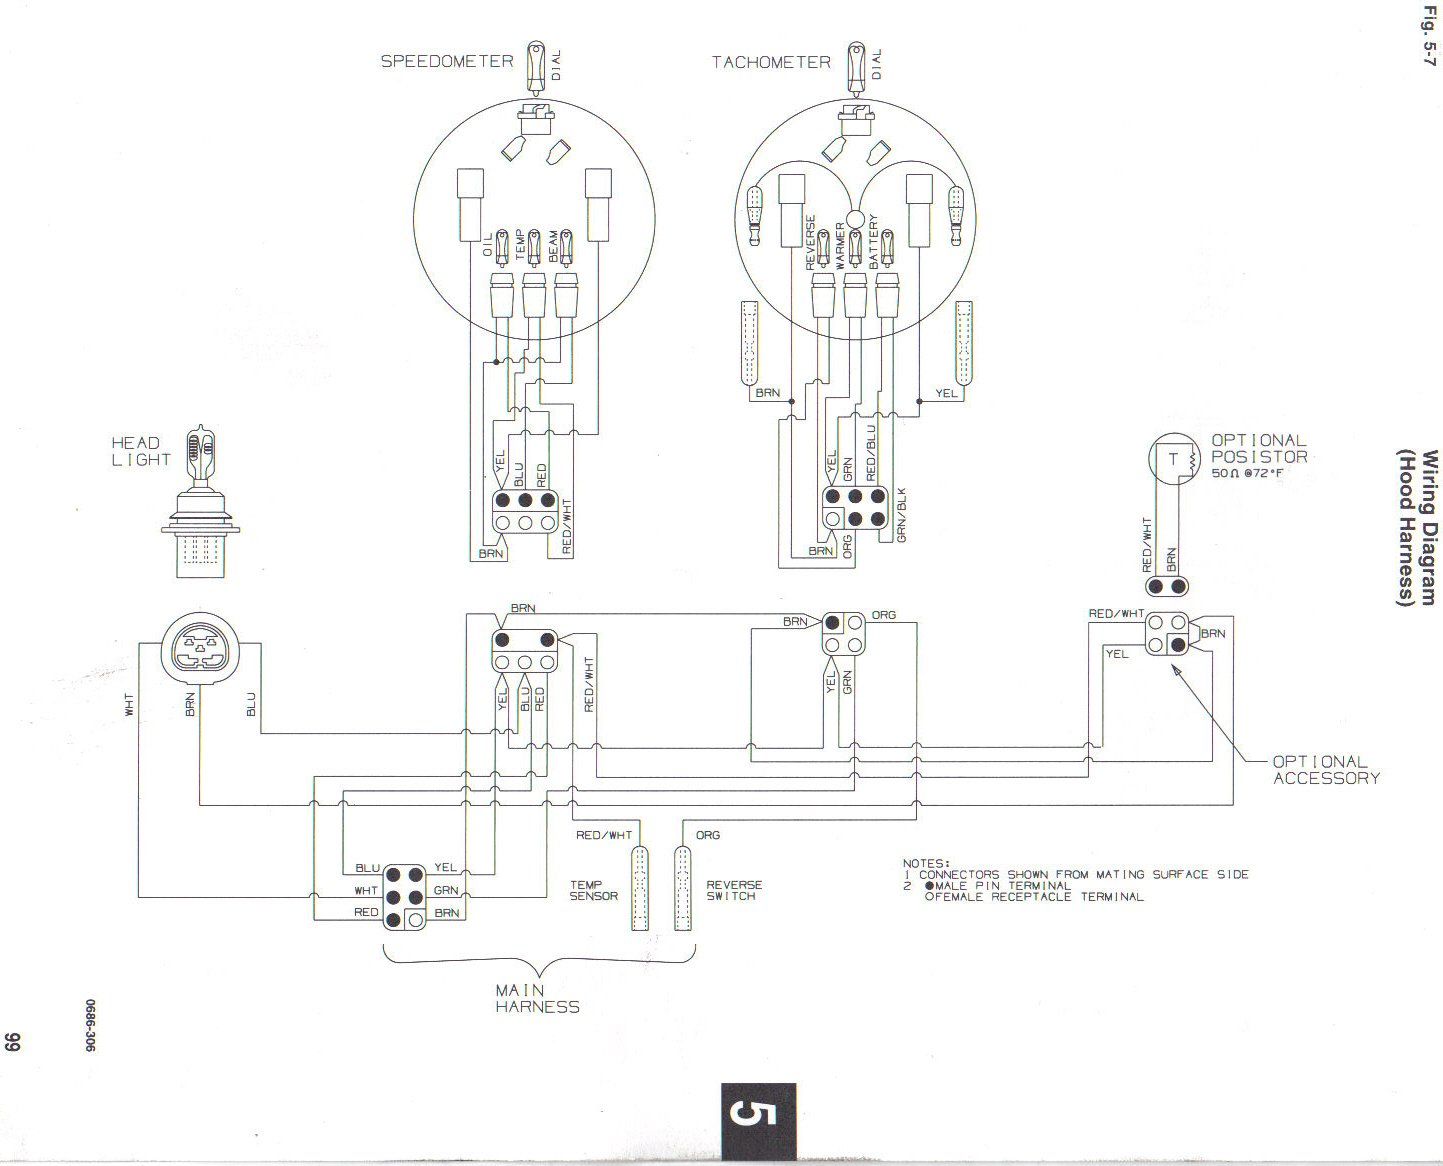 cat d4 steering clutch related keywords cat d4 steering clutch cat d4 dozer starter wiring diagram get image about